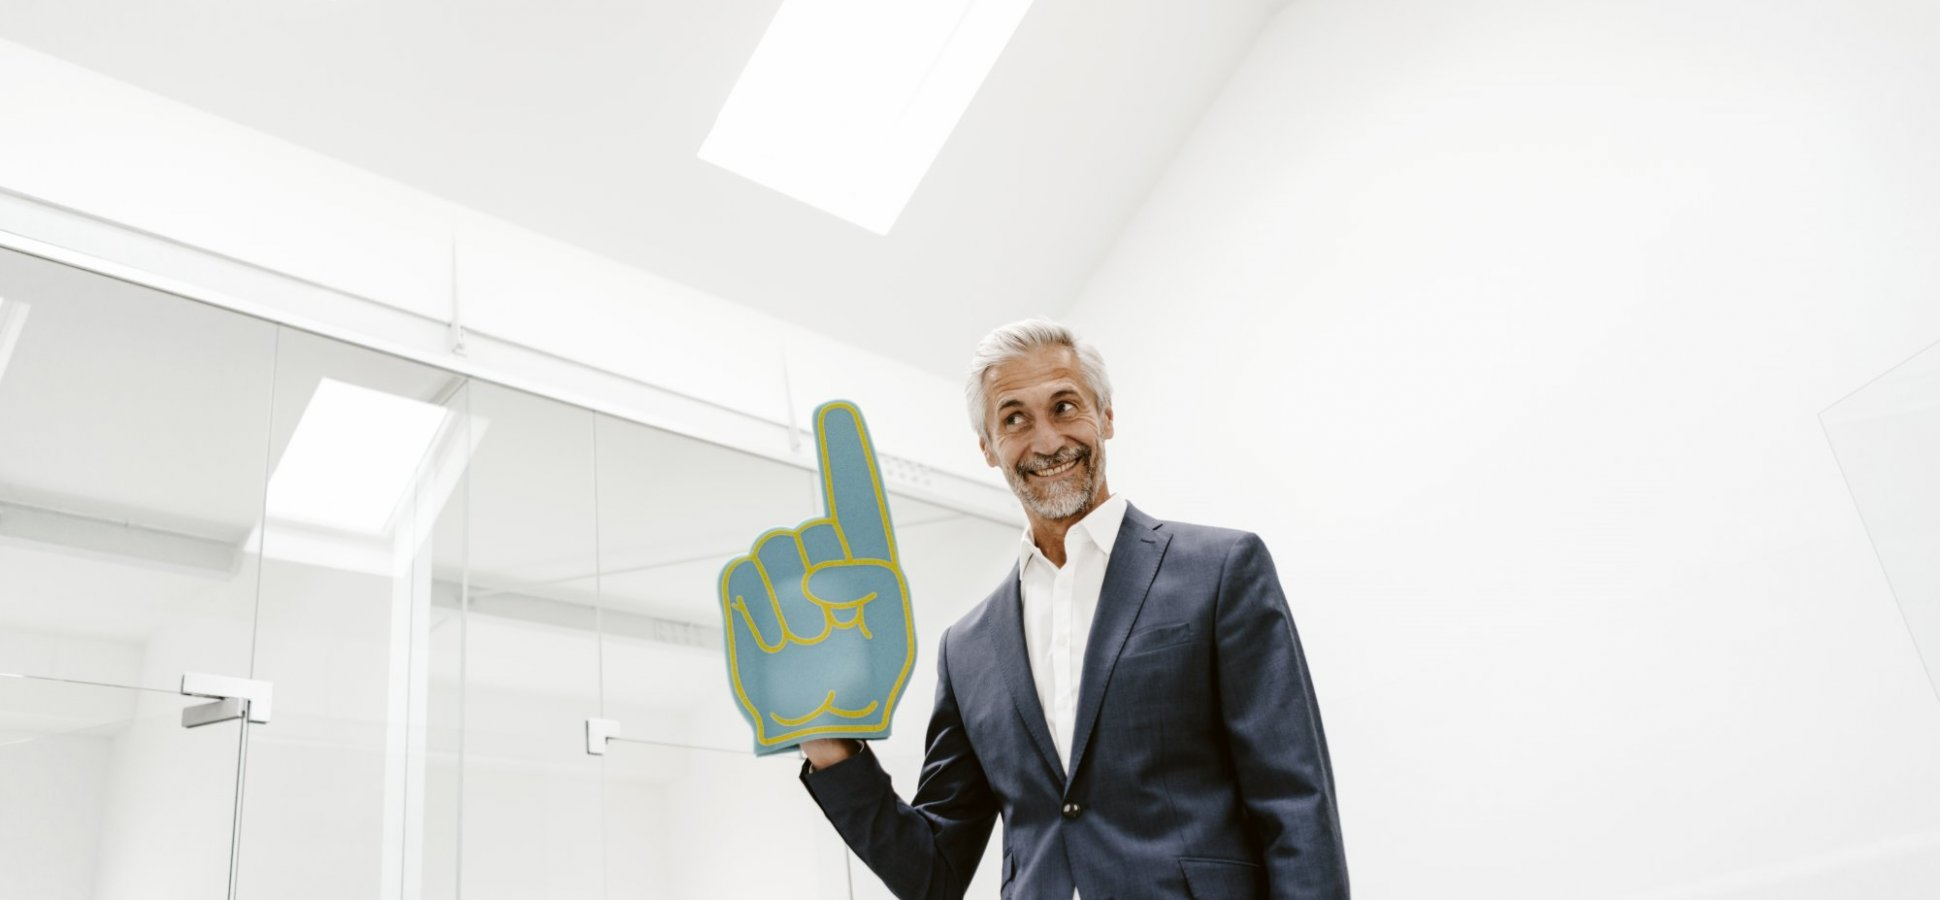 5 Ways to Be a Better Boss (It Starts With Being Tough and Nice)